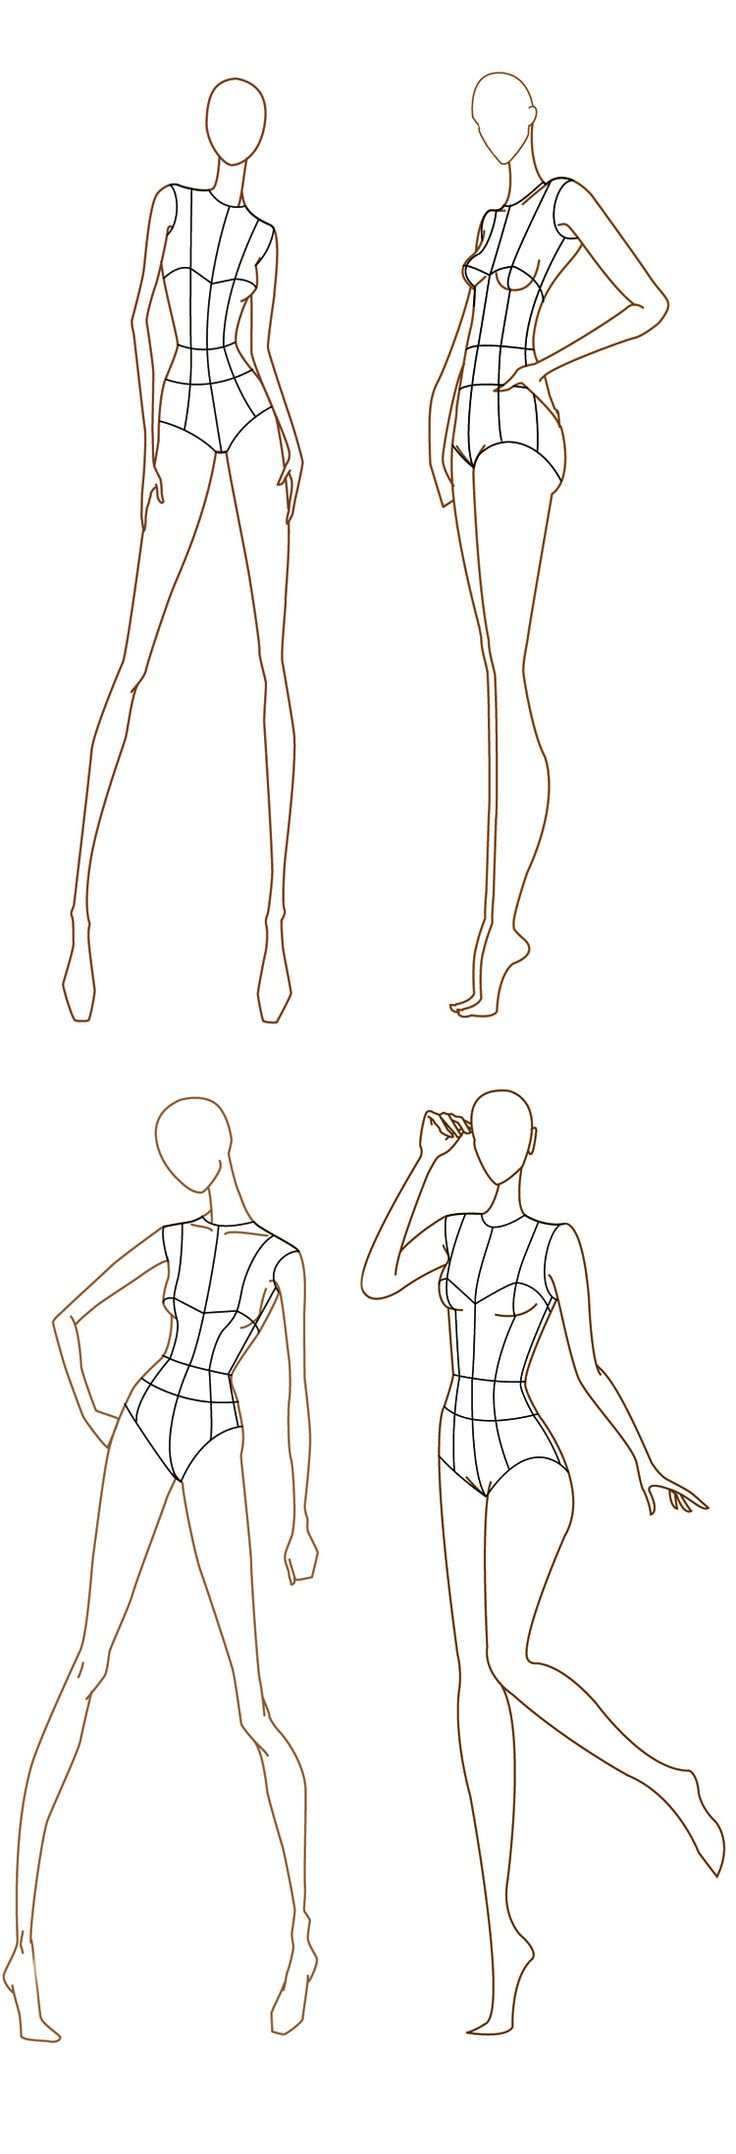 Free Clothing Design Templates Free download Fashion design